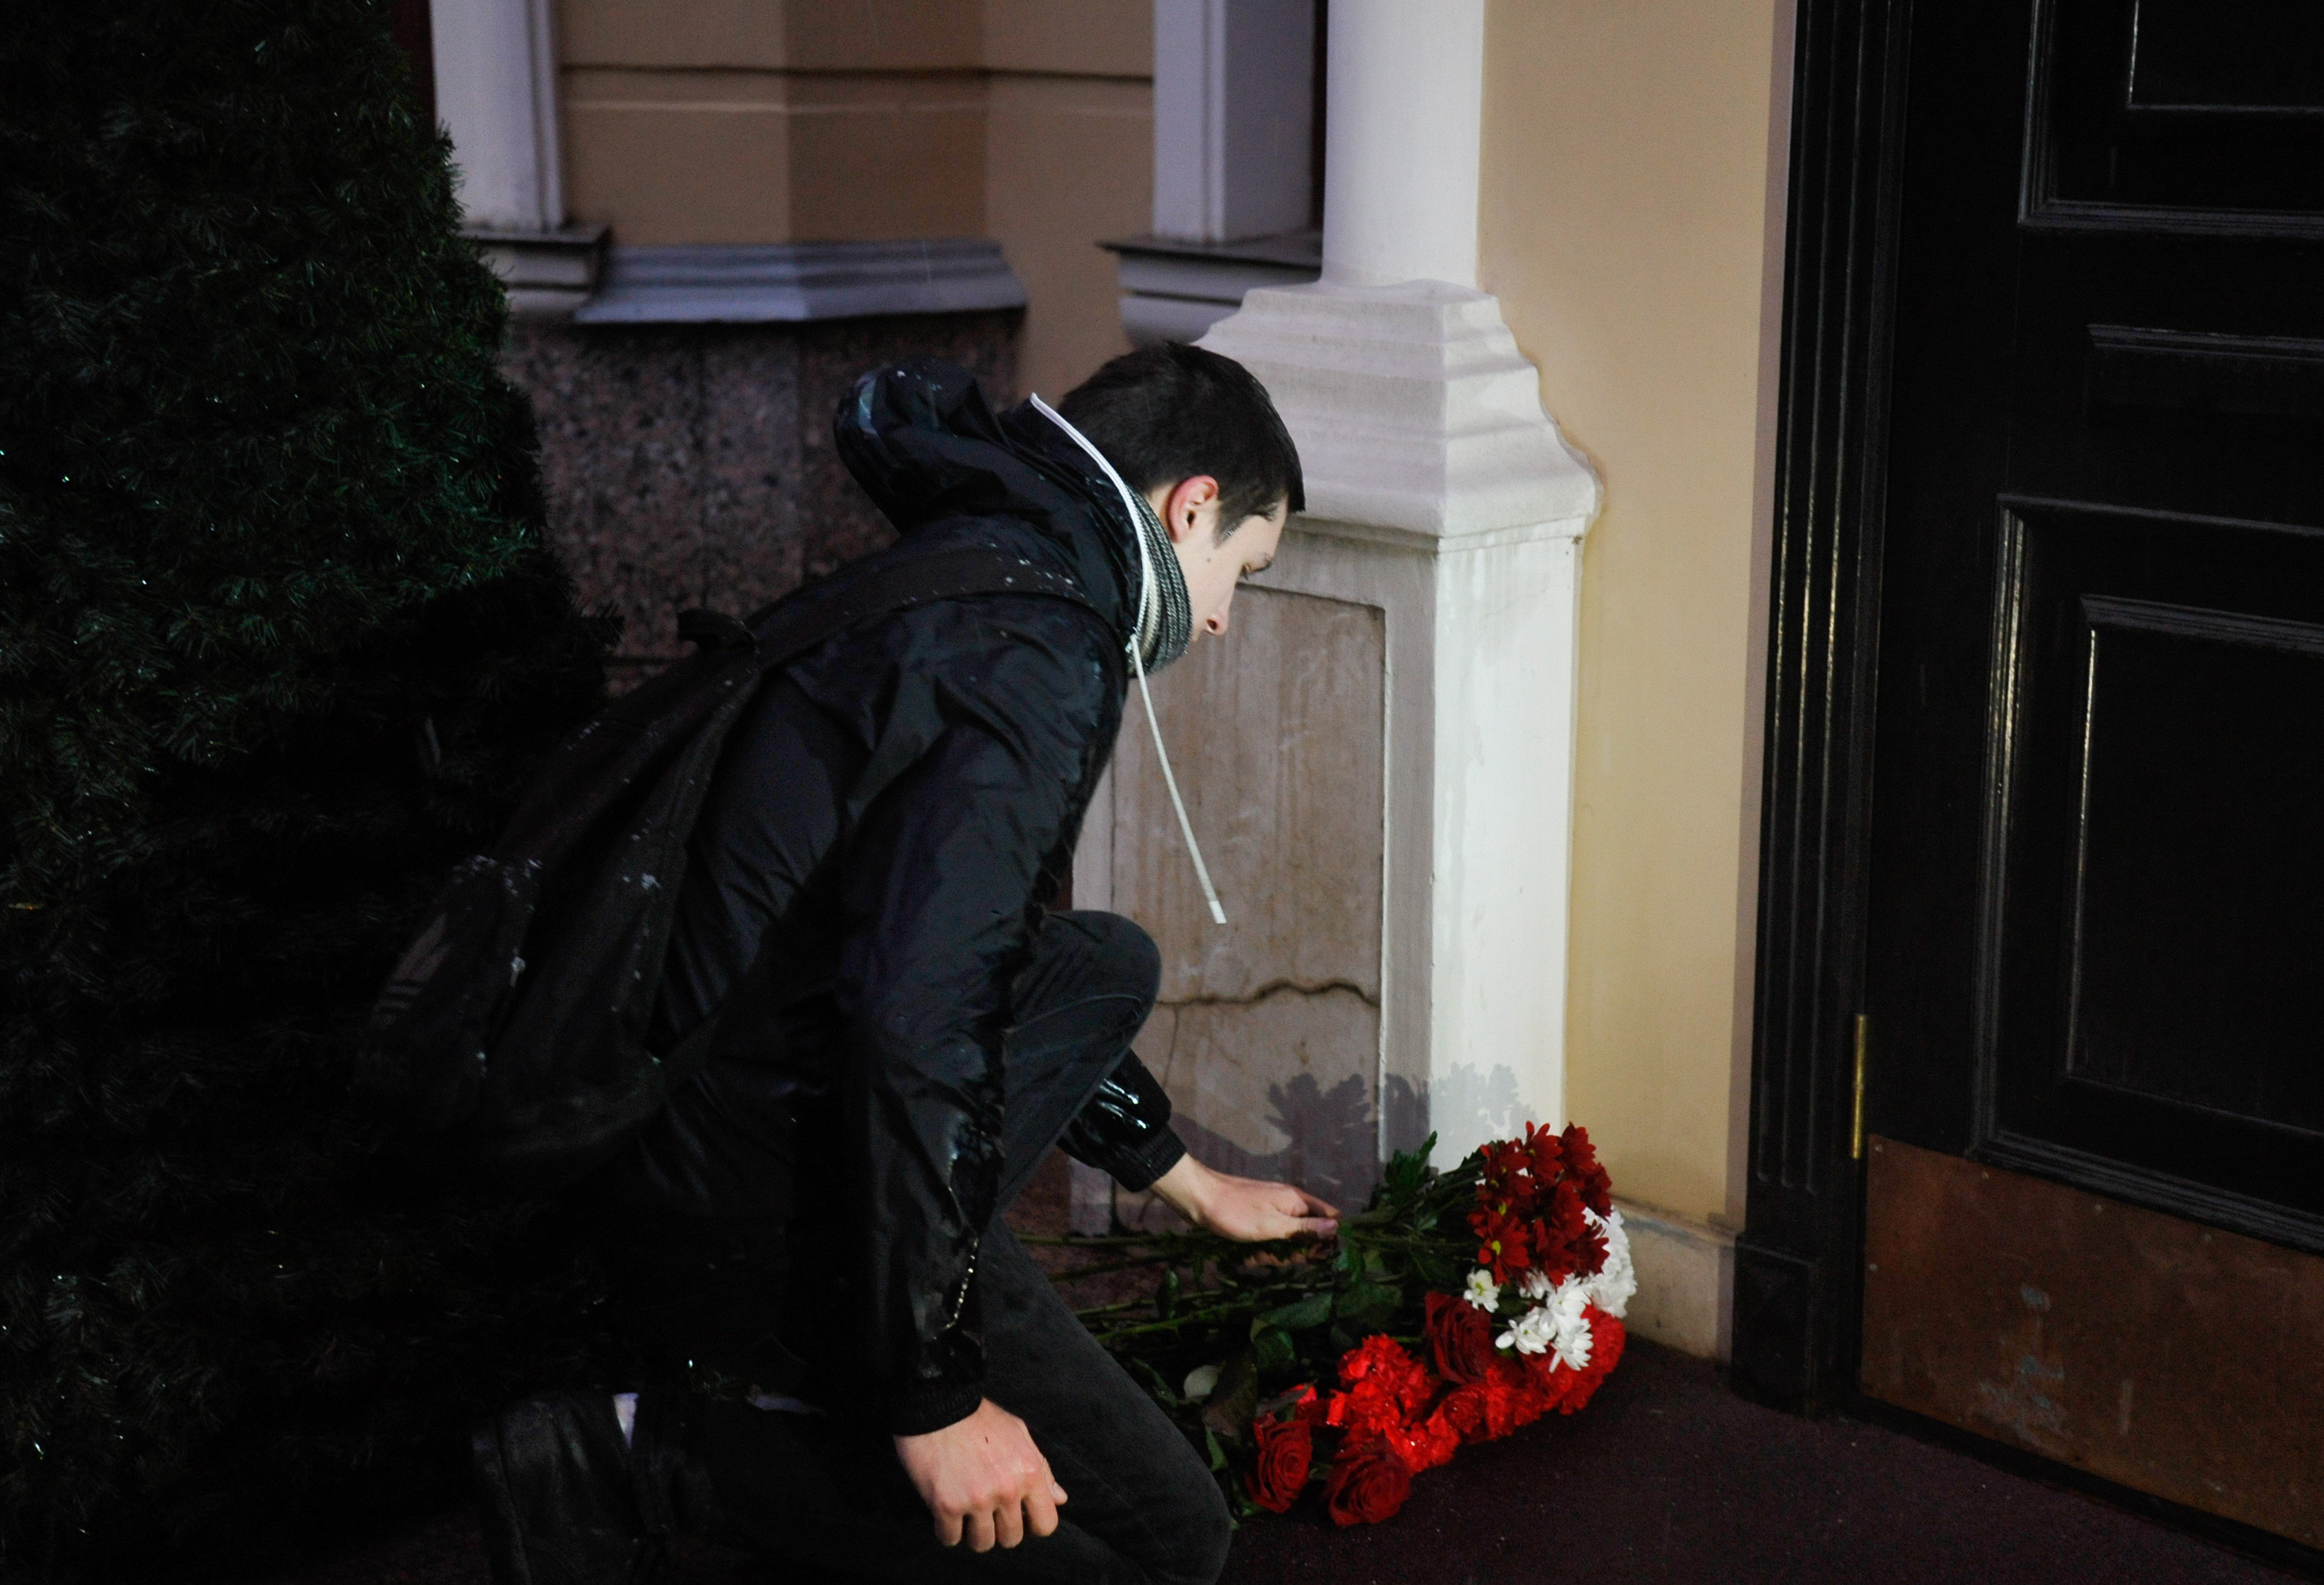 People are bringing flowers and candles to the St. Petersburg government's office in Moscow to commemorate those who died in the metro blast.